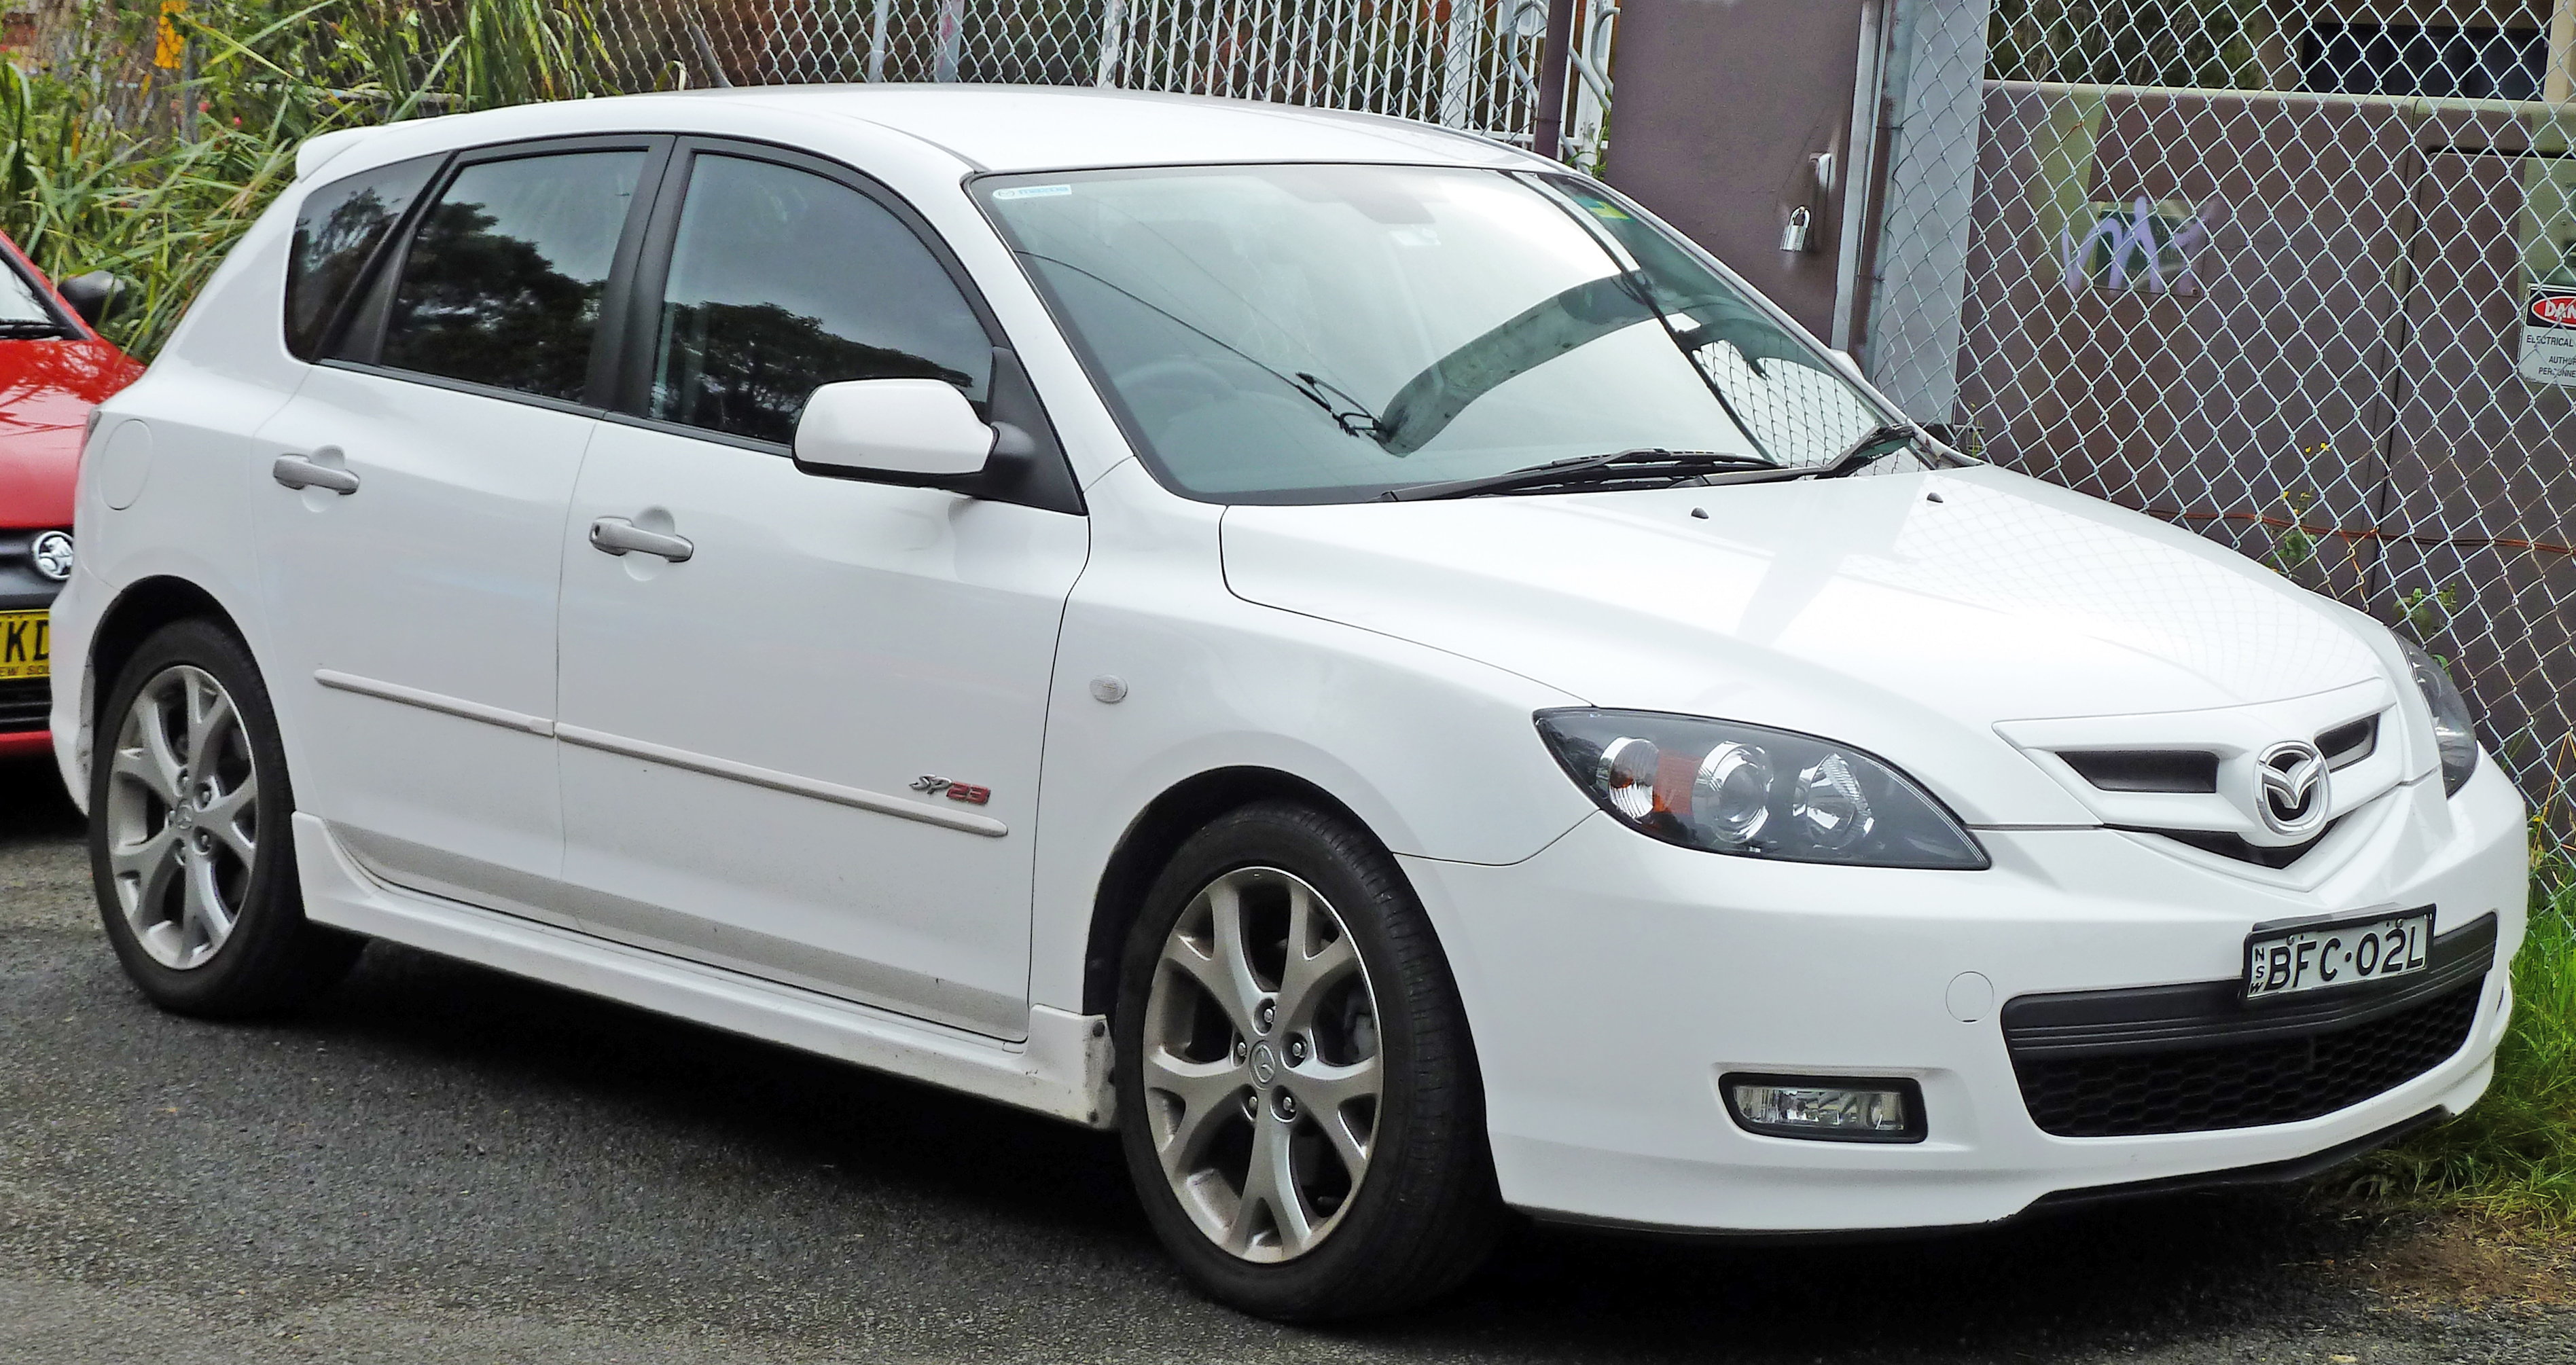 2007 mazda mazda 6 hatchback pictures information and specs auto. Black Bedroom Furniture Sets. Home Design Ideas